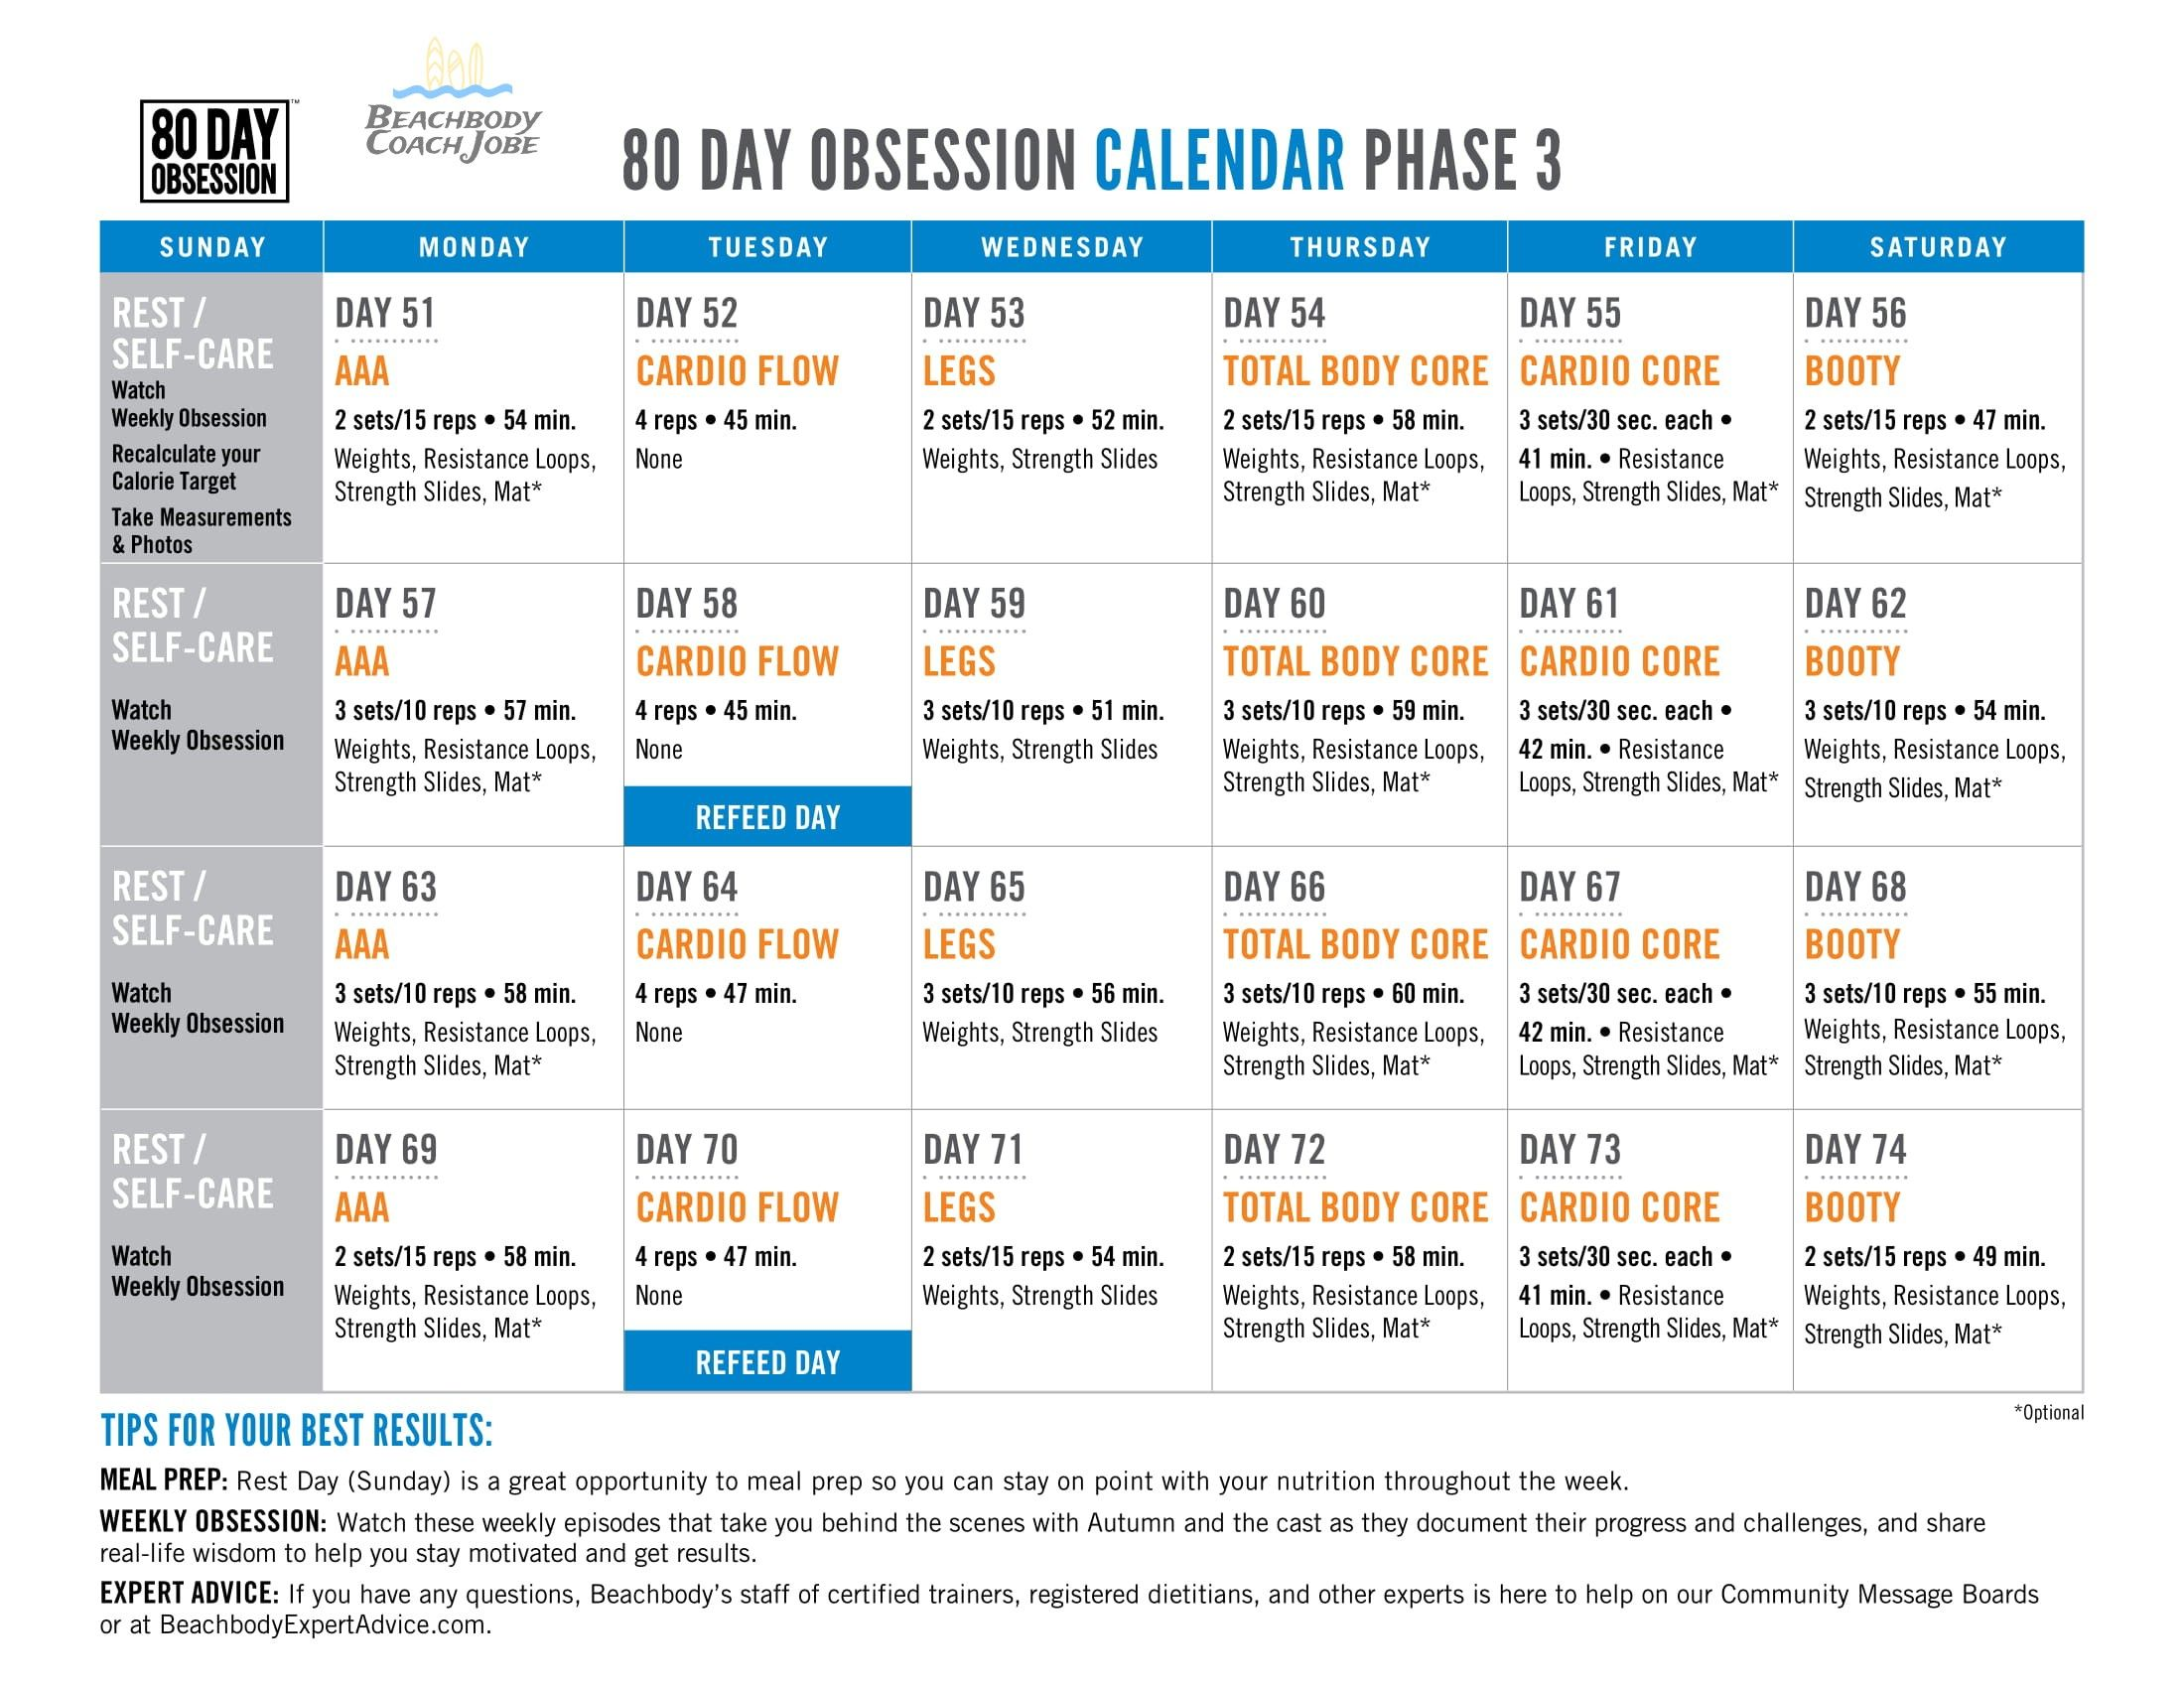 80 Day Obsession Calendar Phase 3 By Beachbody The